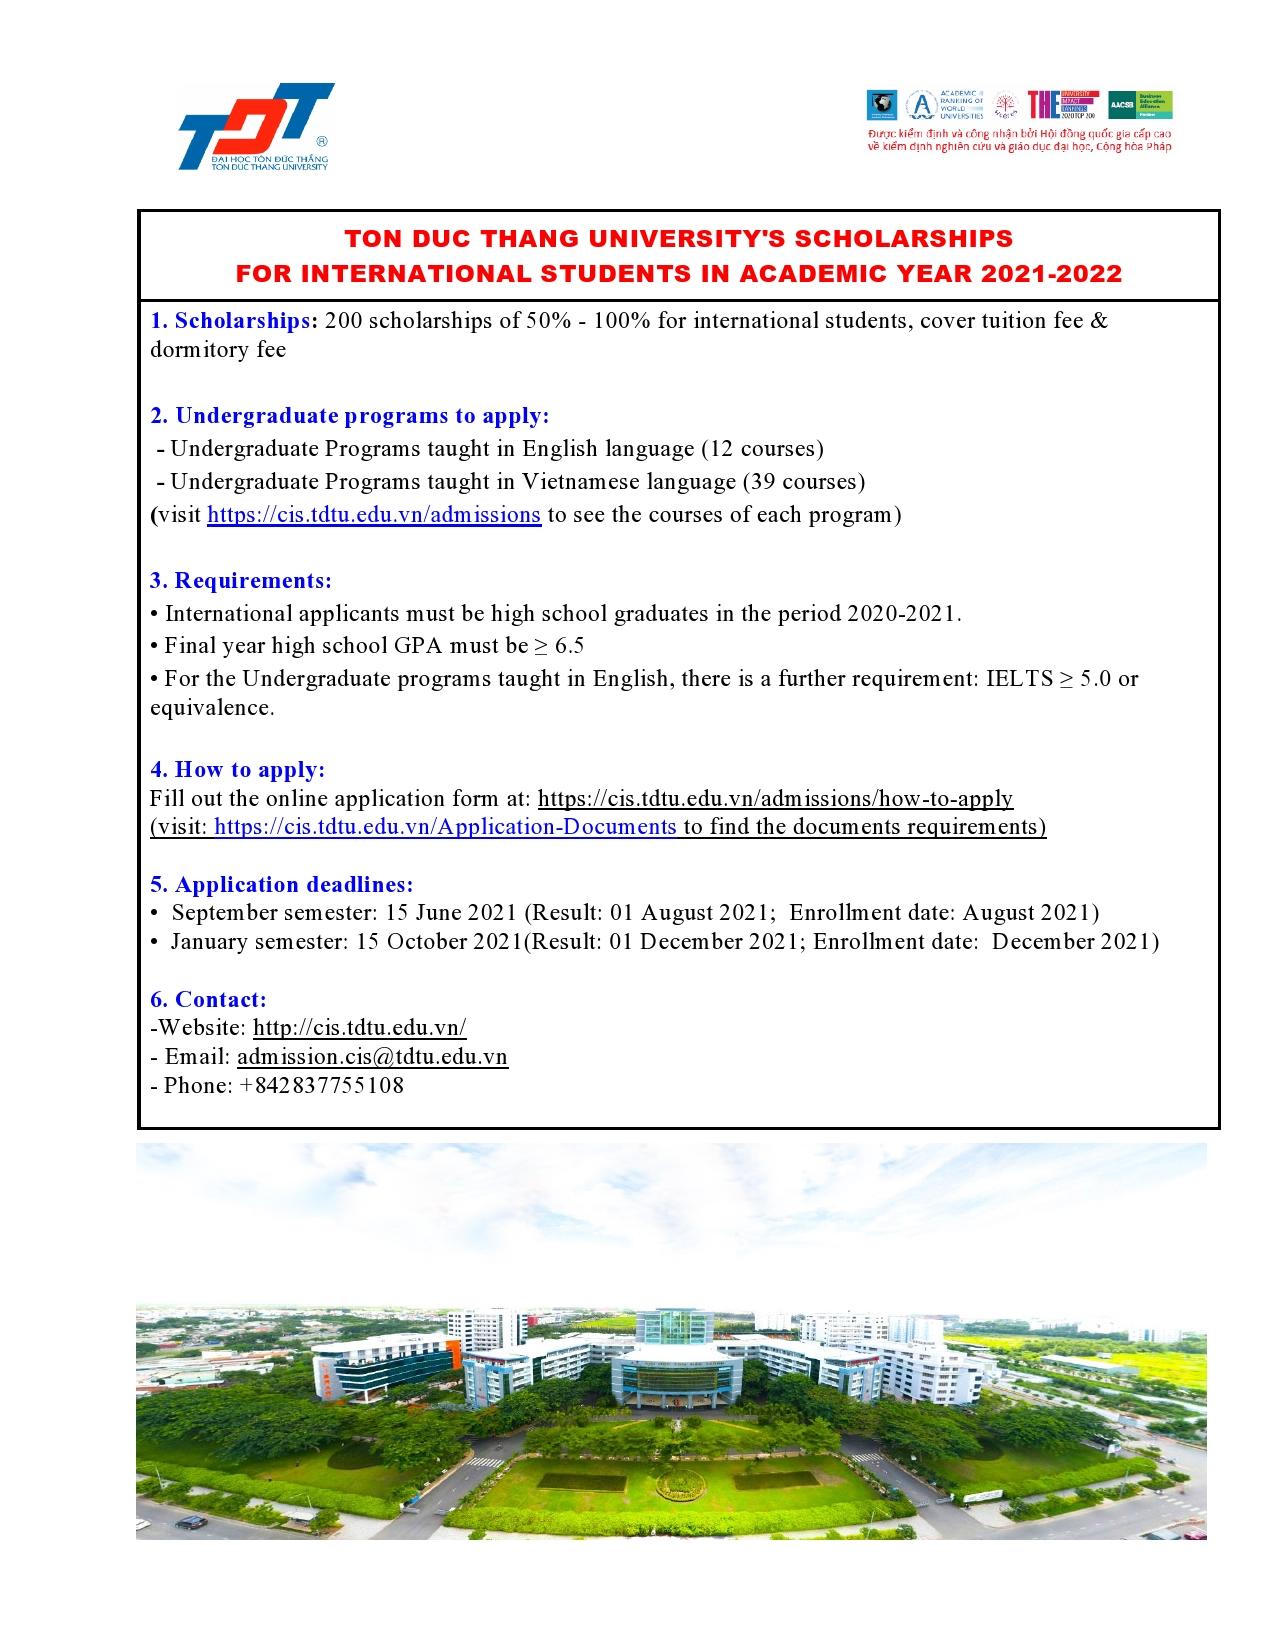 Ton Duc Thang University's scholarships information